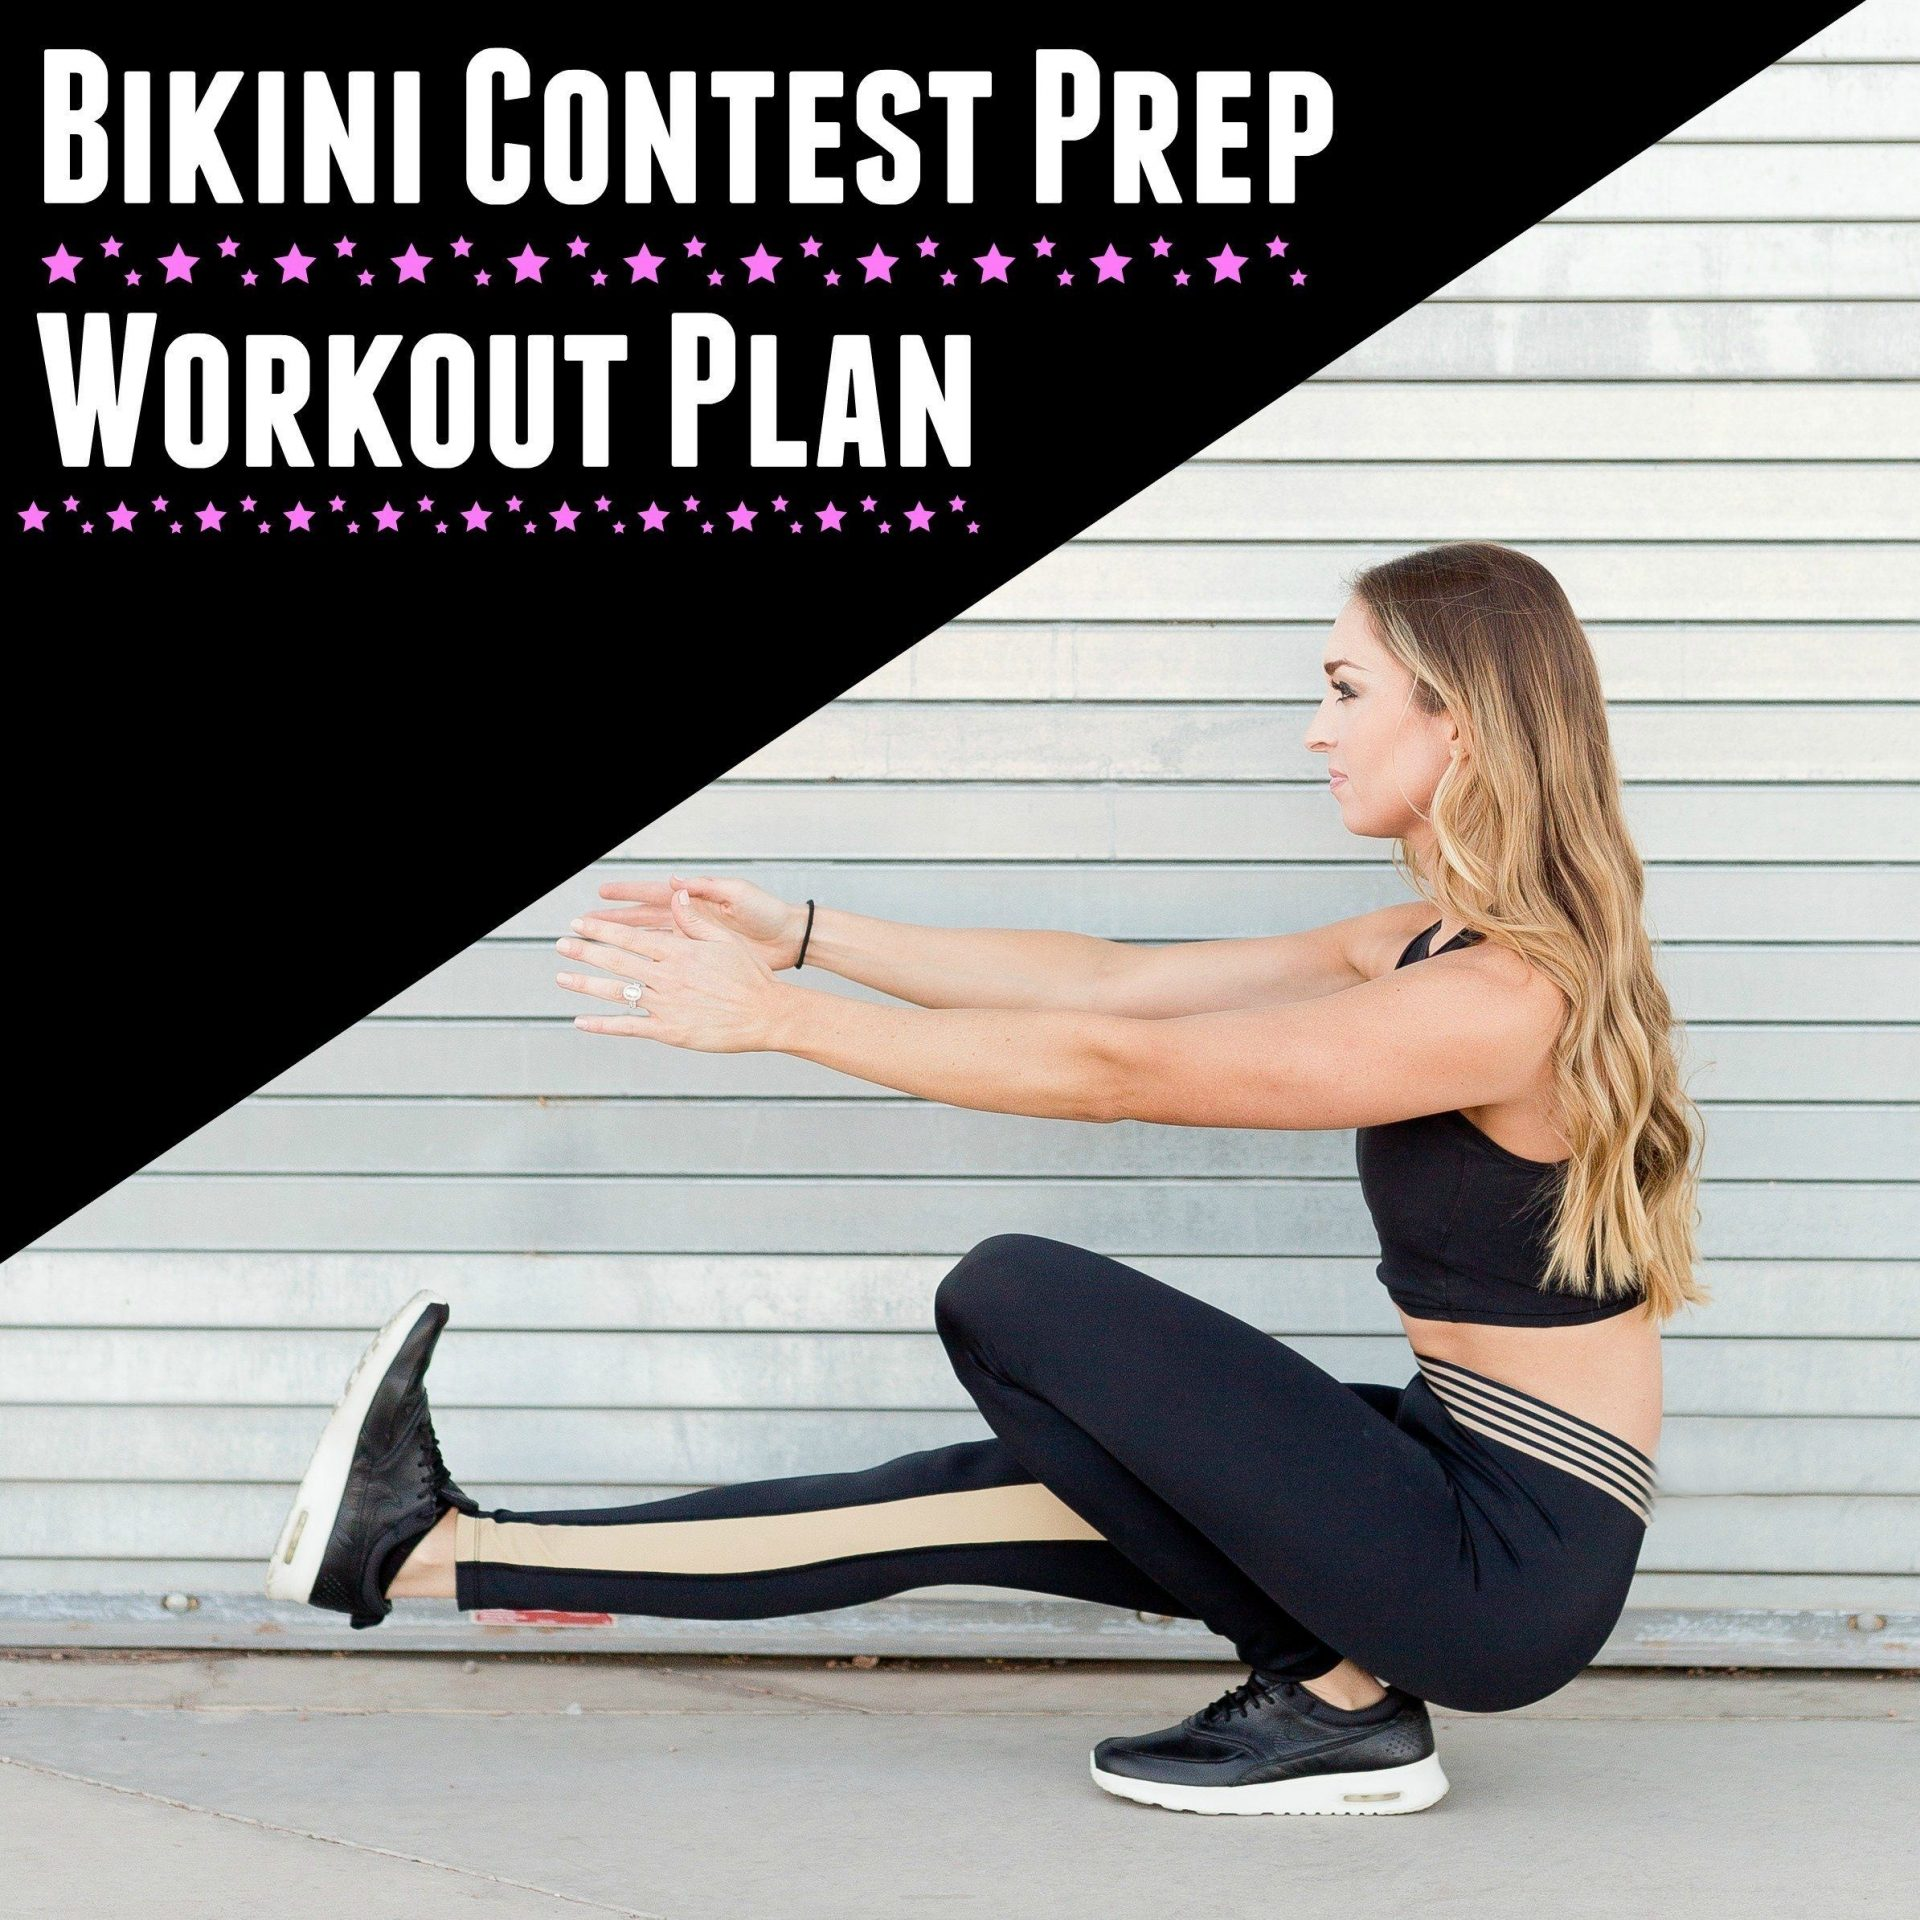 Contest Plan Bikini Beautiful Workout Prep The Core To nw8PO0kX